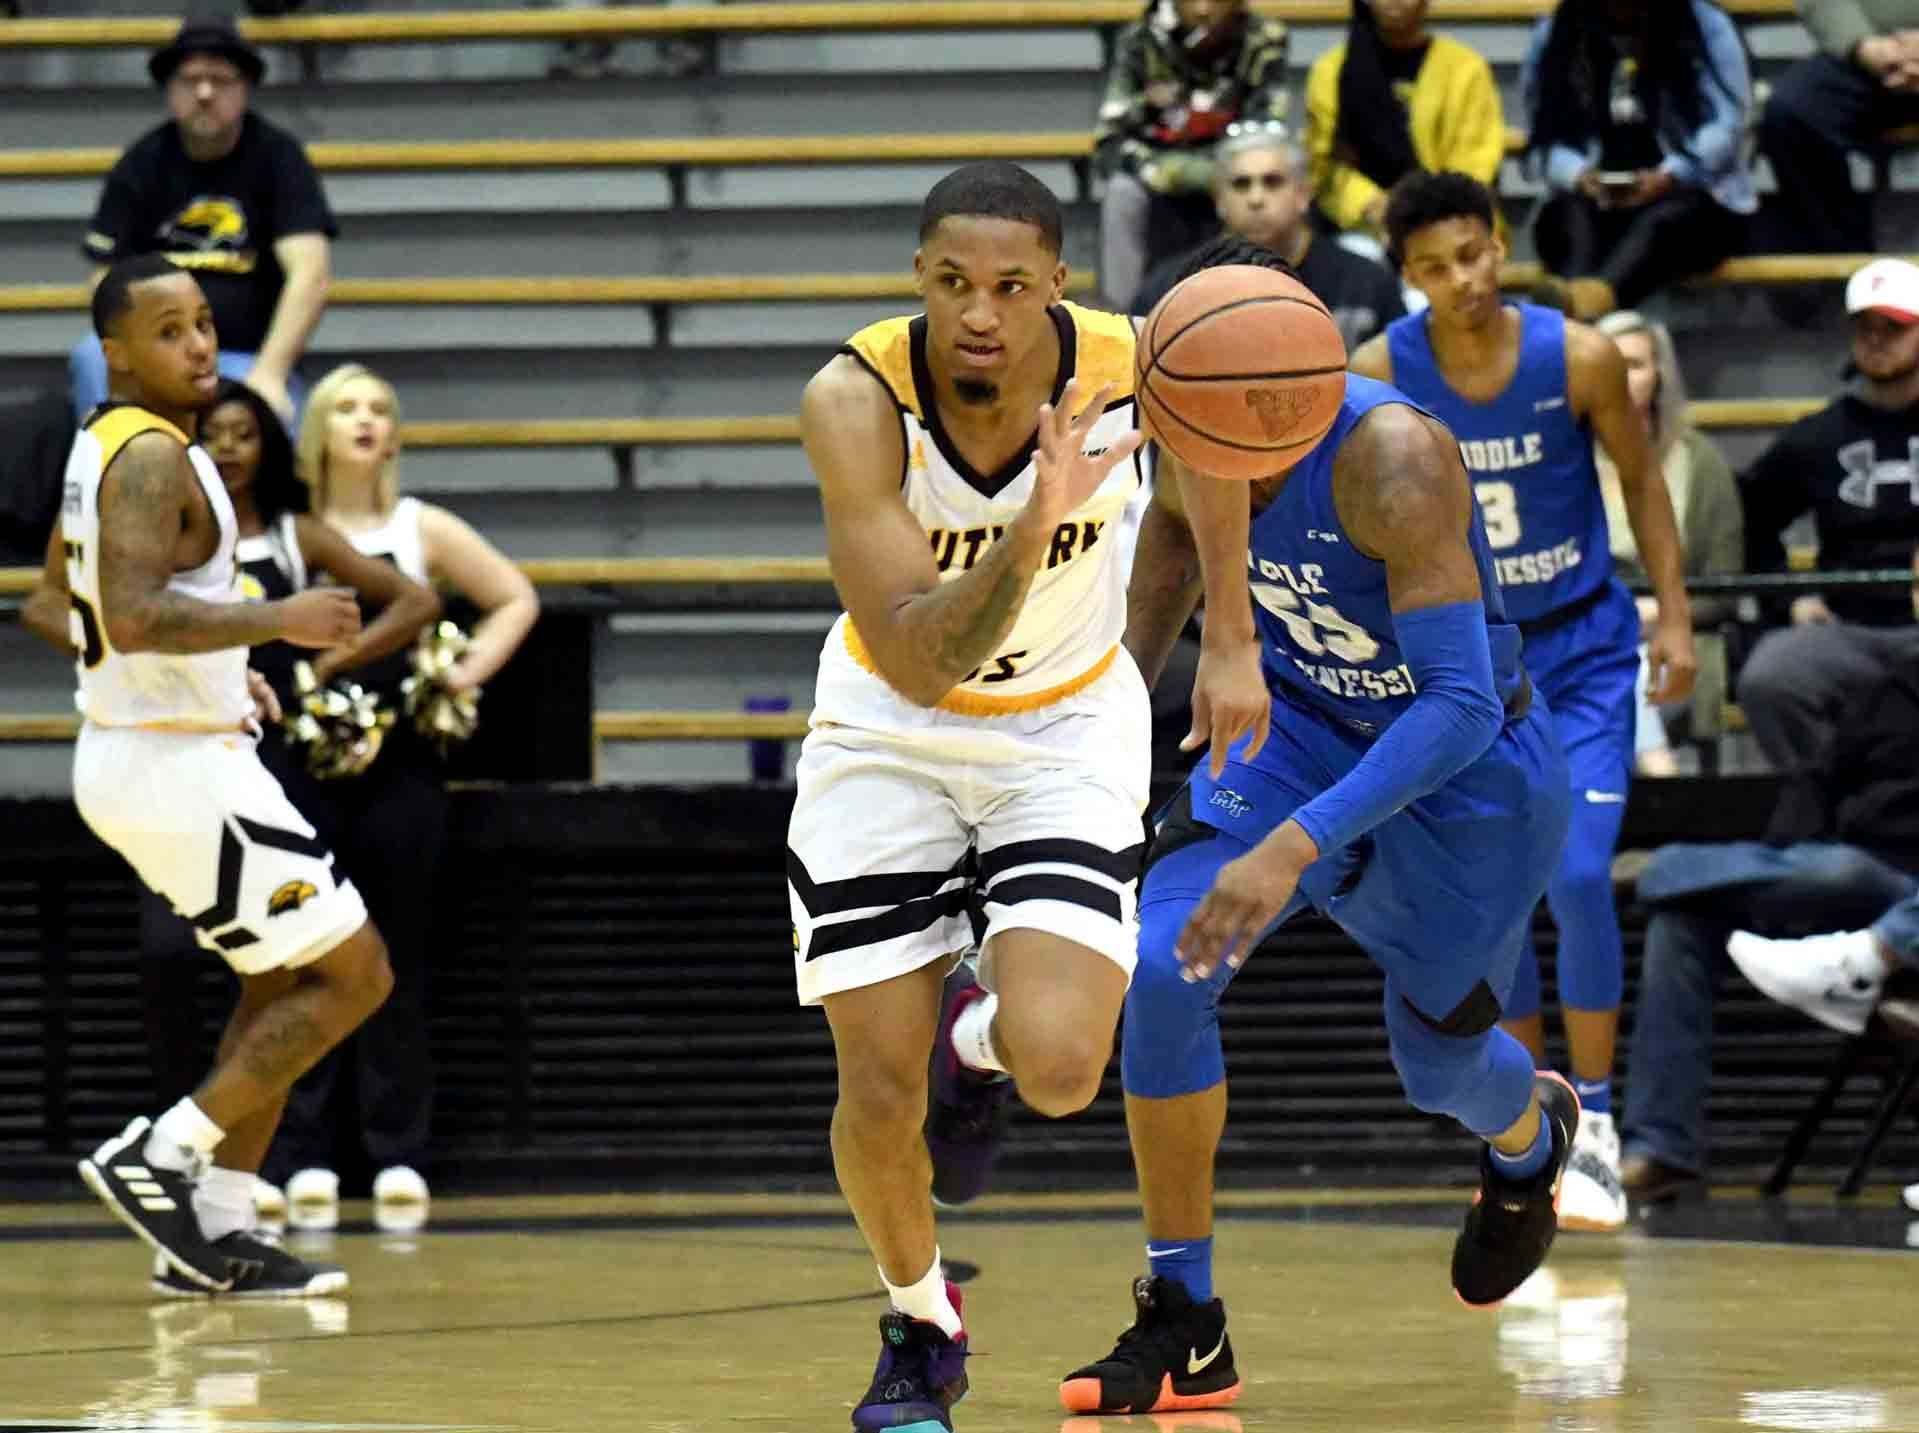 Southern Miss guard Cortez Edwards steals the ball in a game against Middle Tennessee in Reed Green Coliseum on Thursday, January 10, 2019.